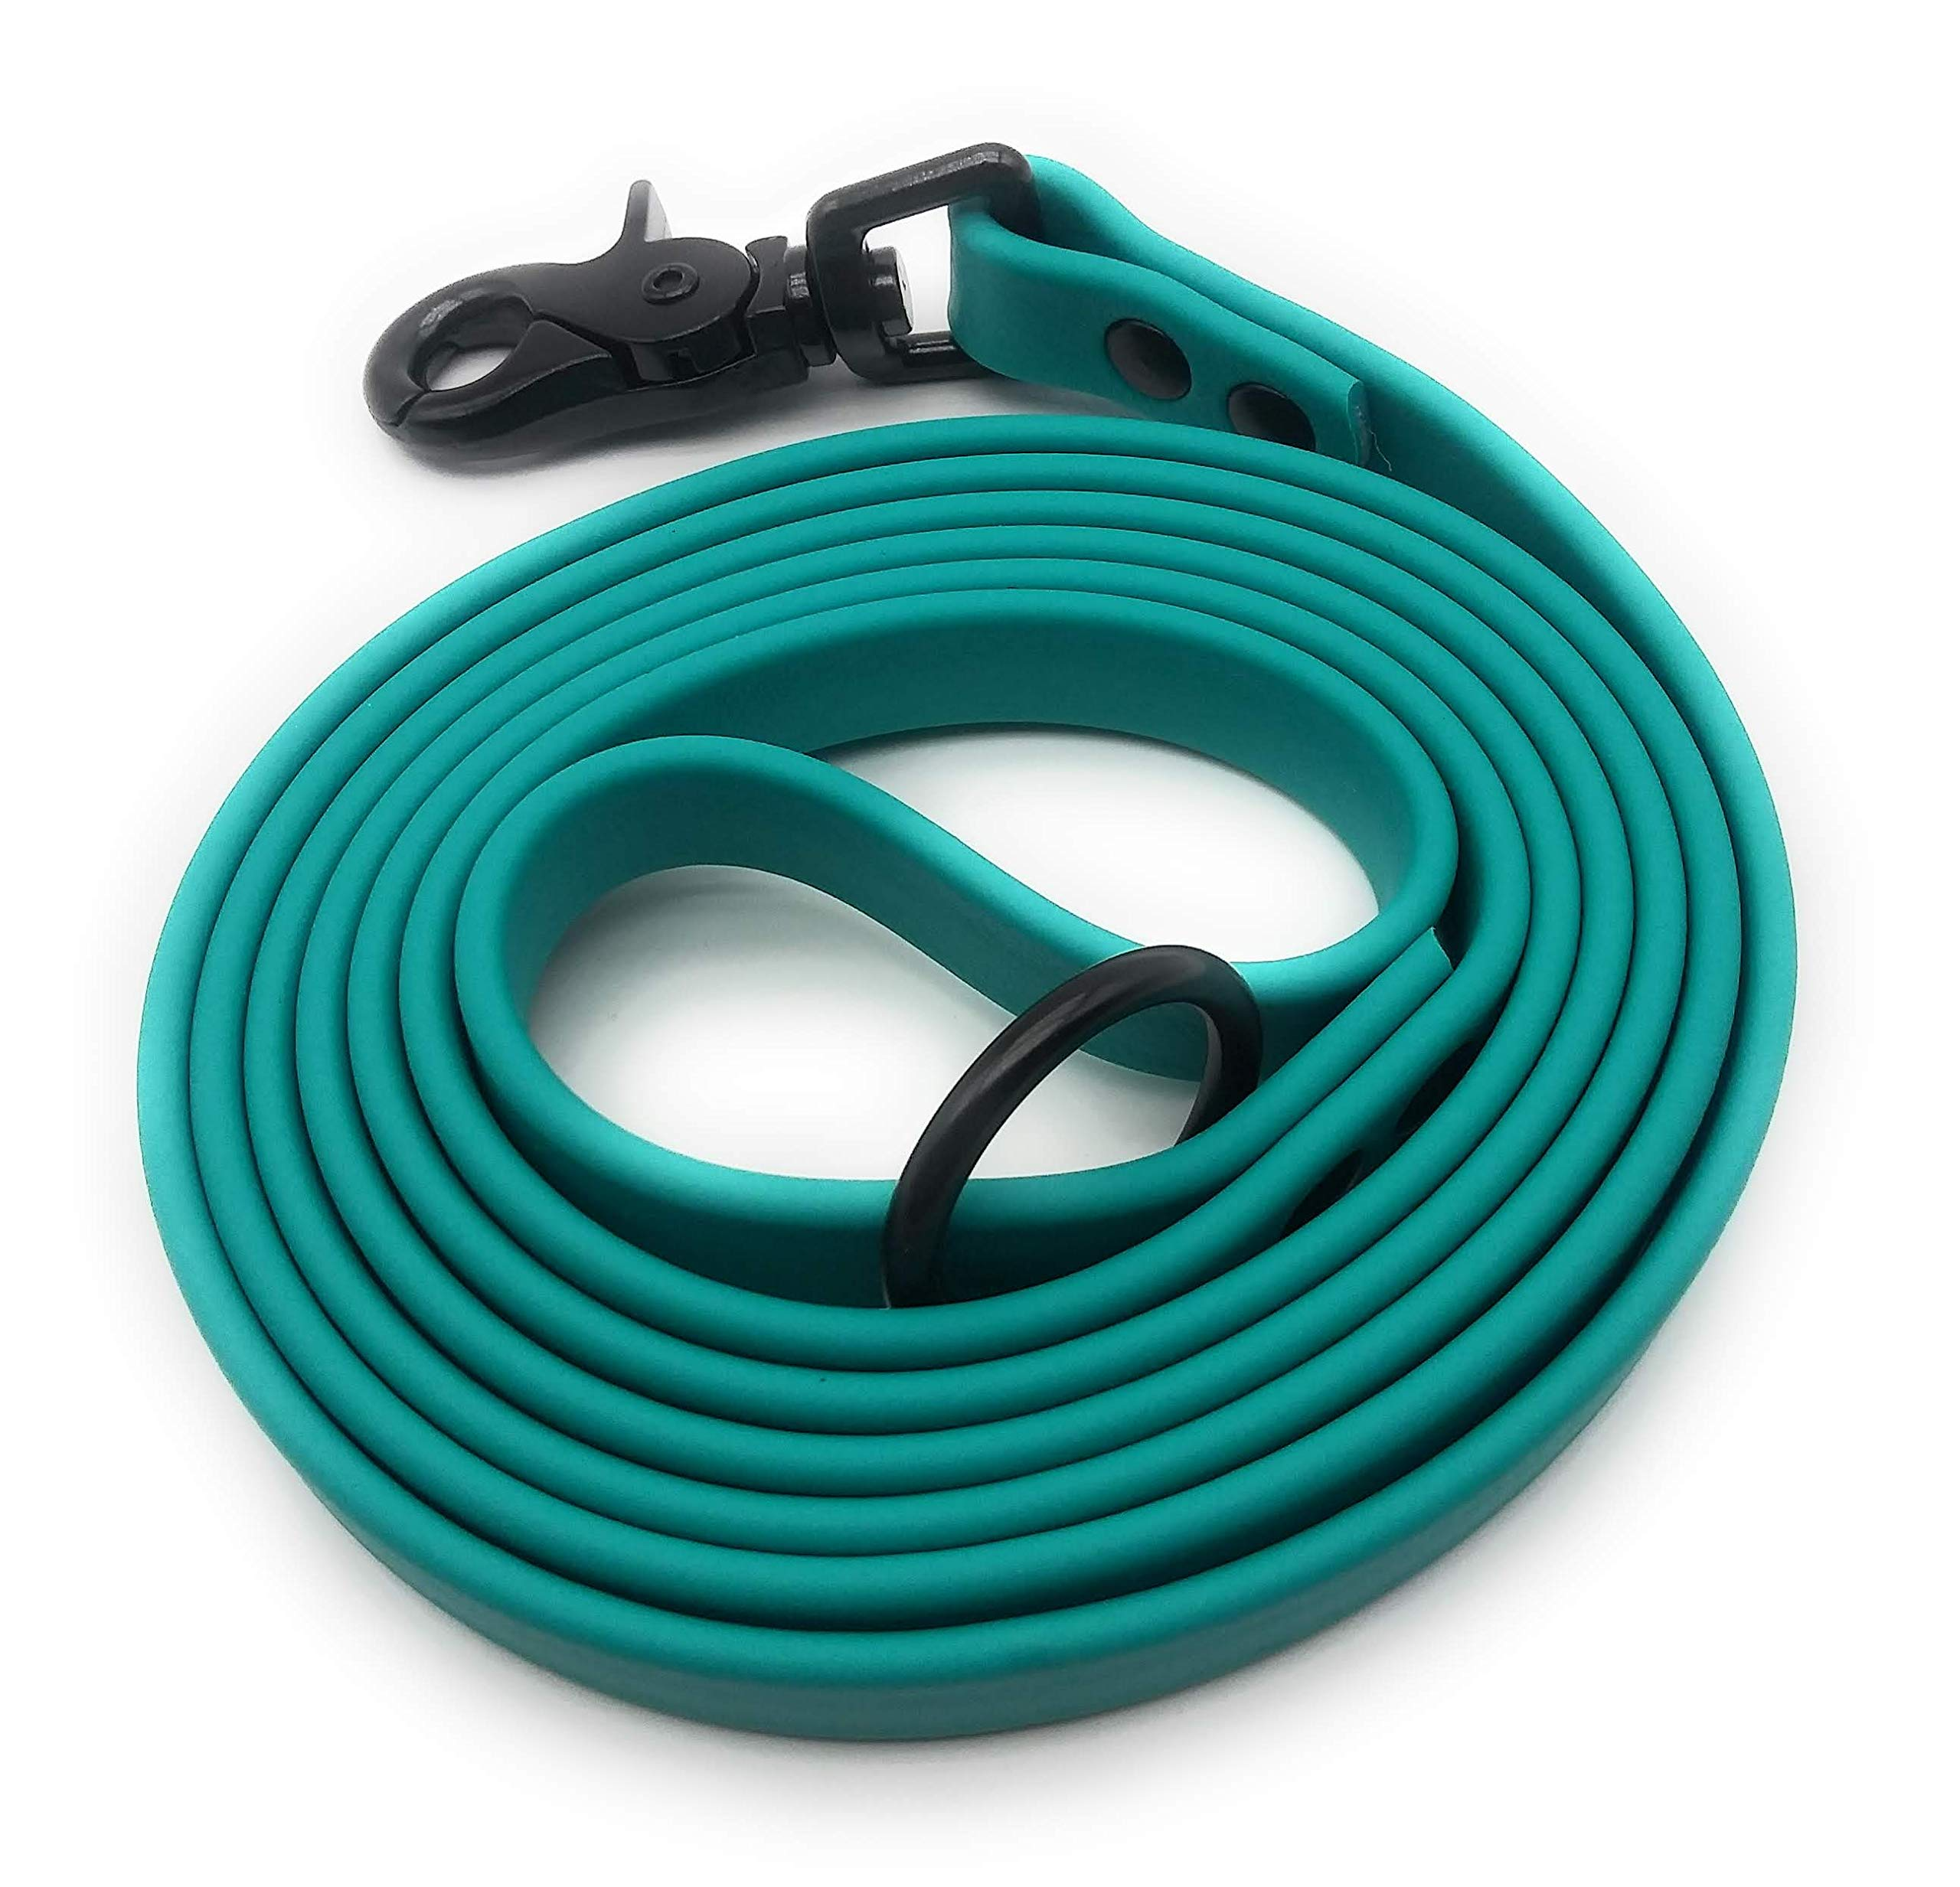 Furbaby Products Dog Training Leash Made for Puppy, Medium, and Large Dogs Made from Biothane Material with Black Hardware (6ft, Teal) by Furbaby Products